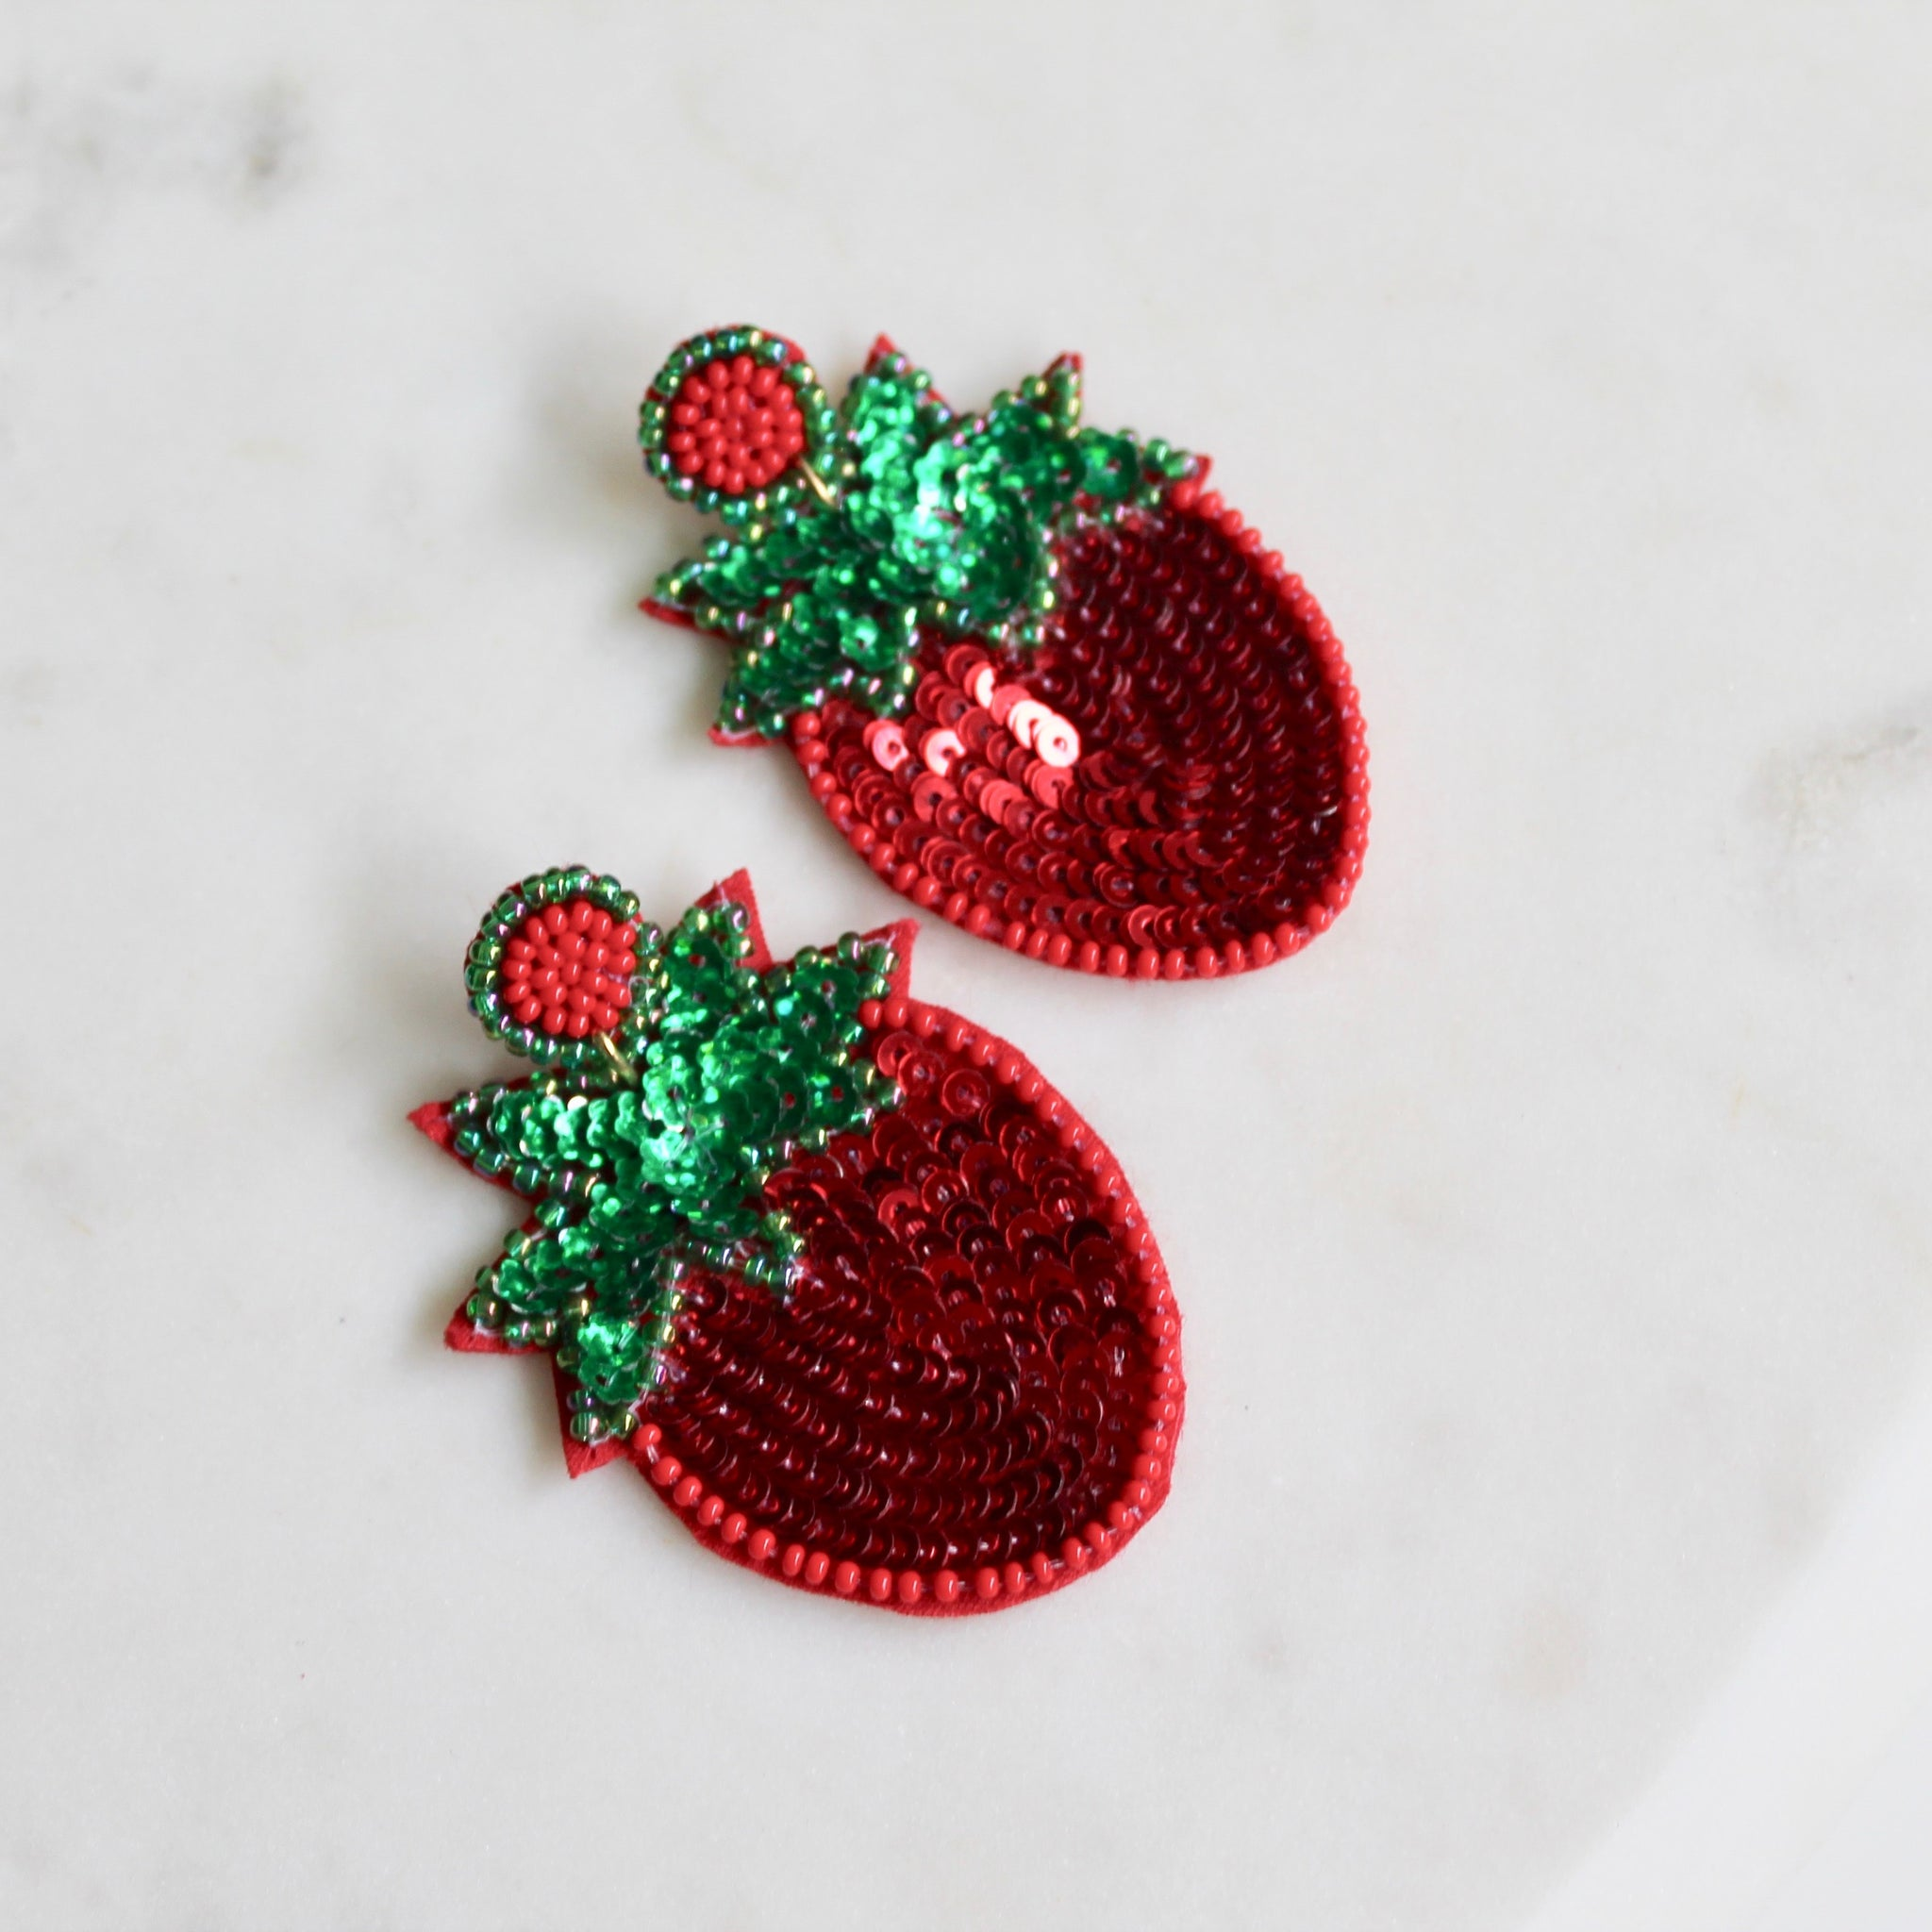 Strawberry sequin beaded earrings - Lily Lough Jewelry